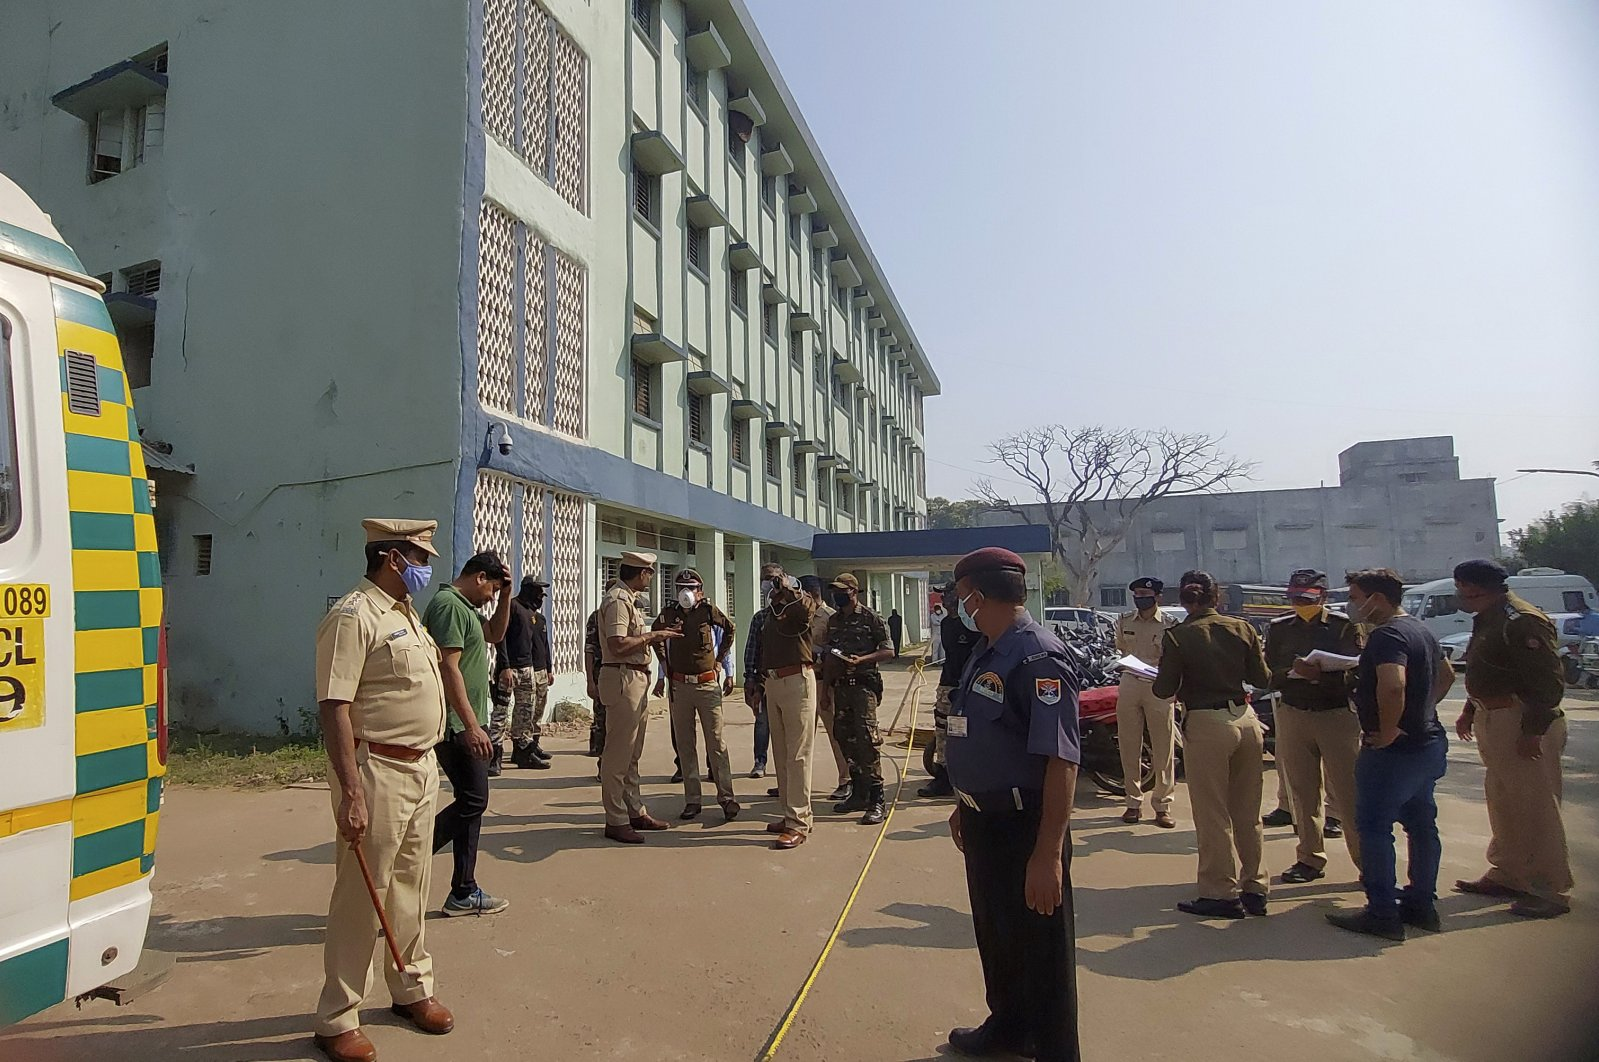 Police officers investigate the scene after a fire broke out at District General Hospital in Bhandara, about 70 kilometers (43 miles) from Nagpur, India, Jan. 9, 2021. (AP Photo)